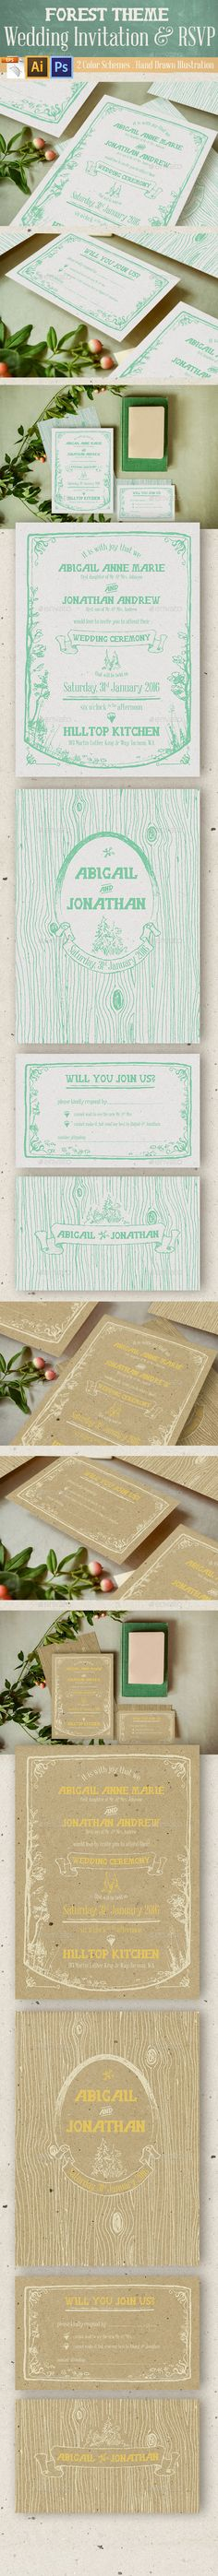 Wedding and Engagement Invitation Kit Template design